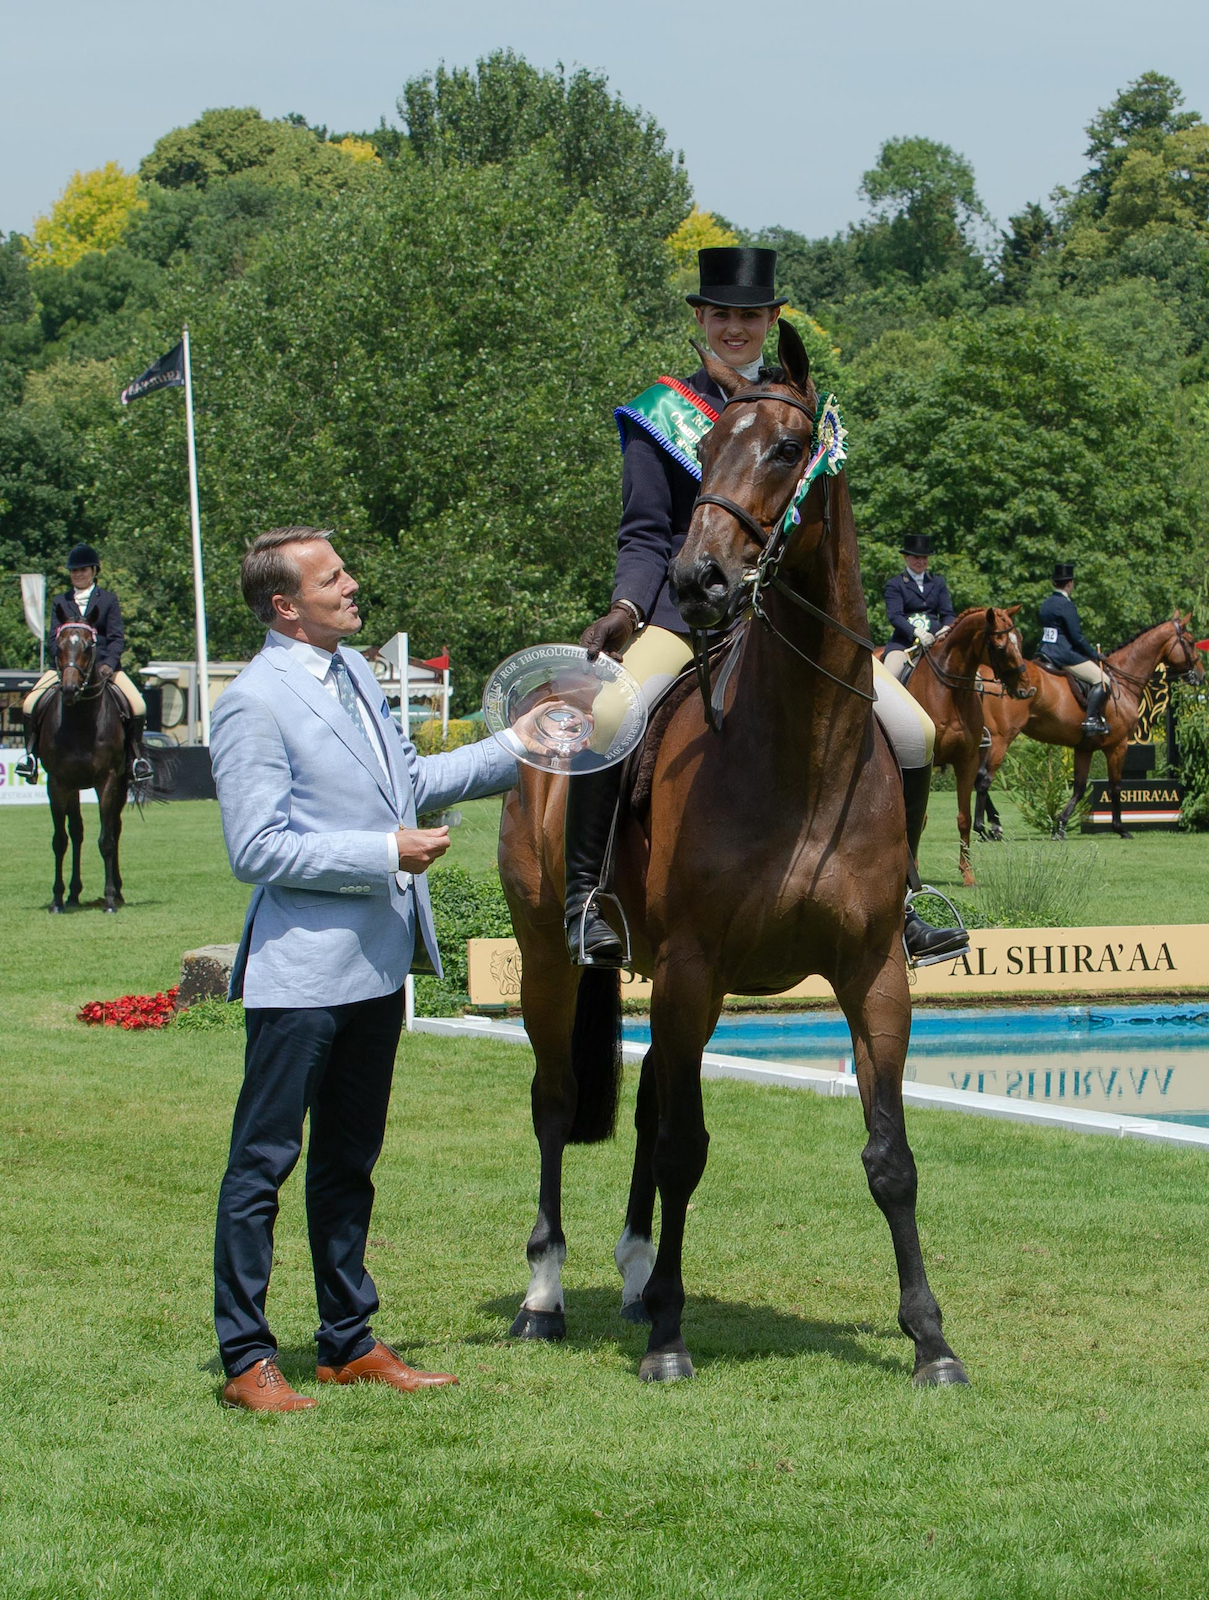 Winner of the RoR Show Series Champion,former racehorse What Of It, ridden by Hannah Horton. Julian Portche Photography